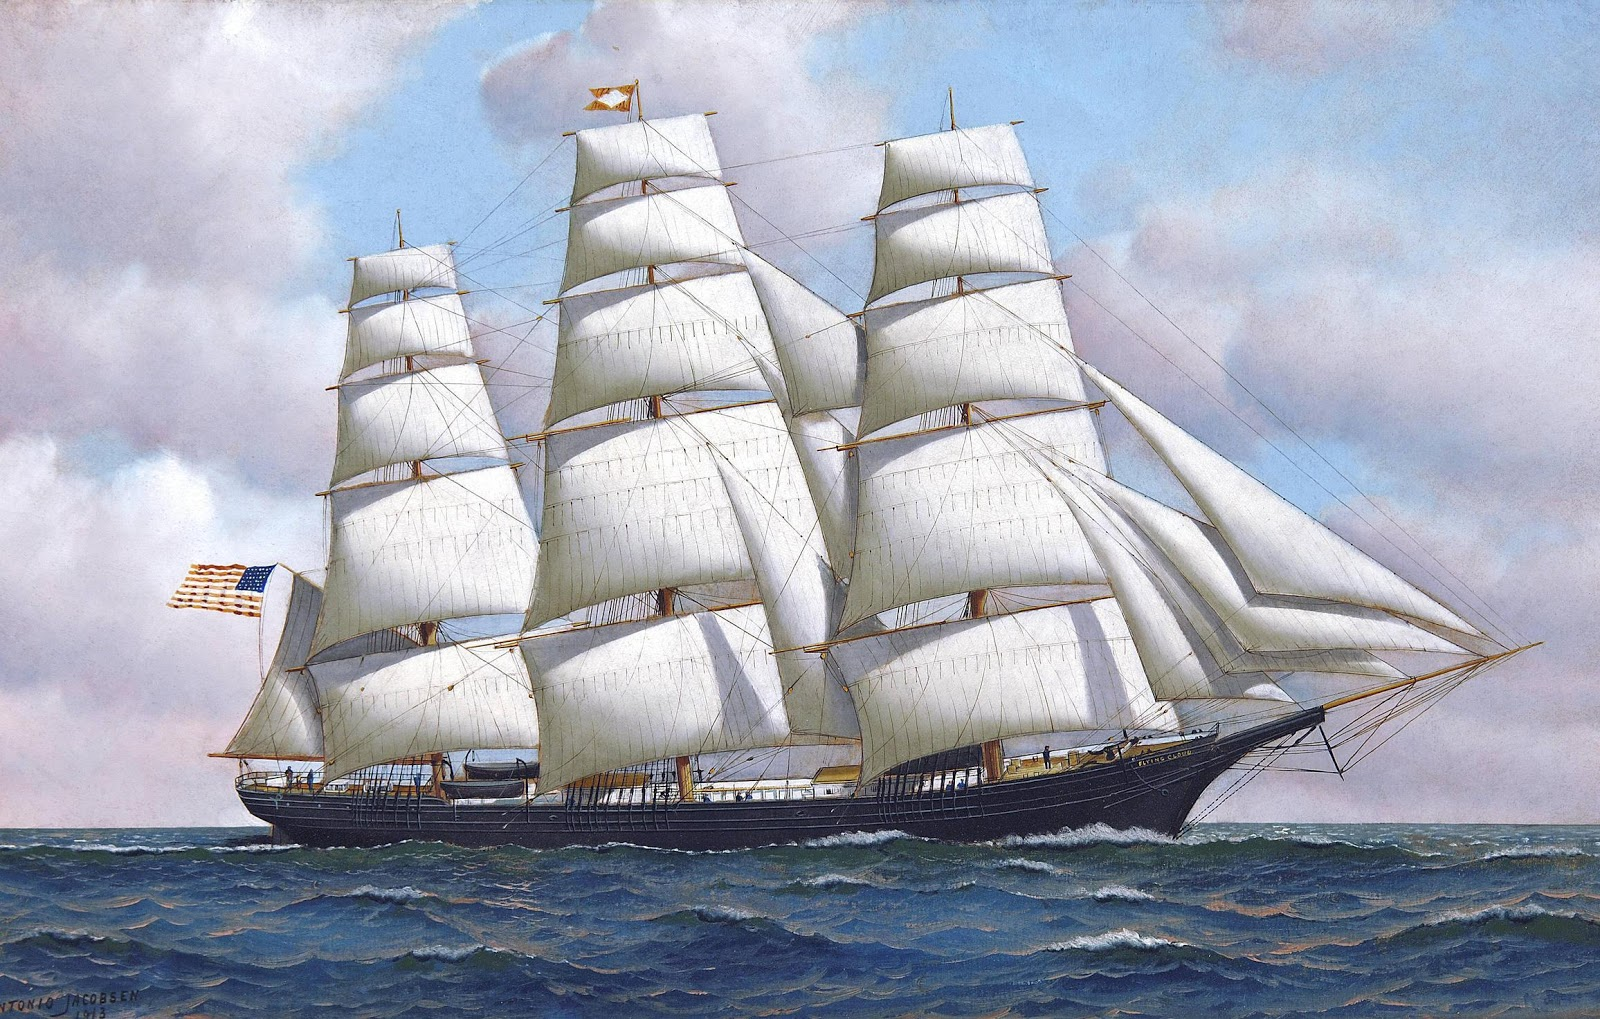 Part of the Ship, Part of the Crew